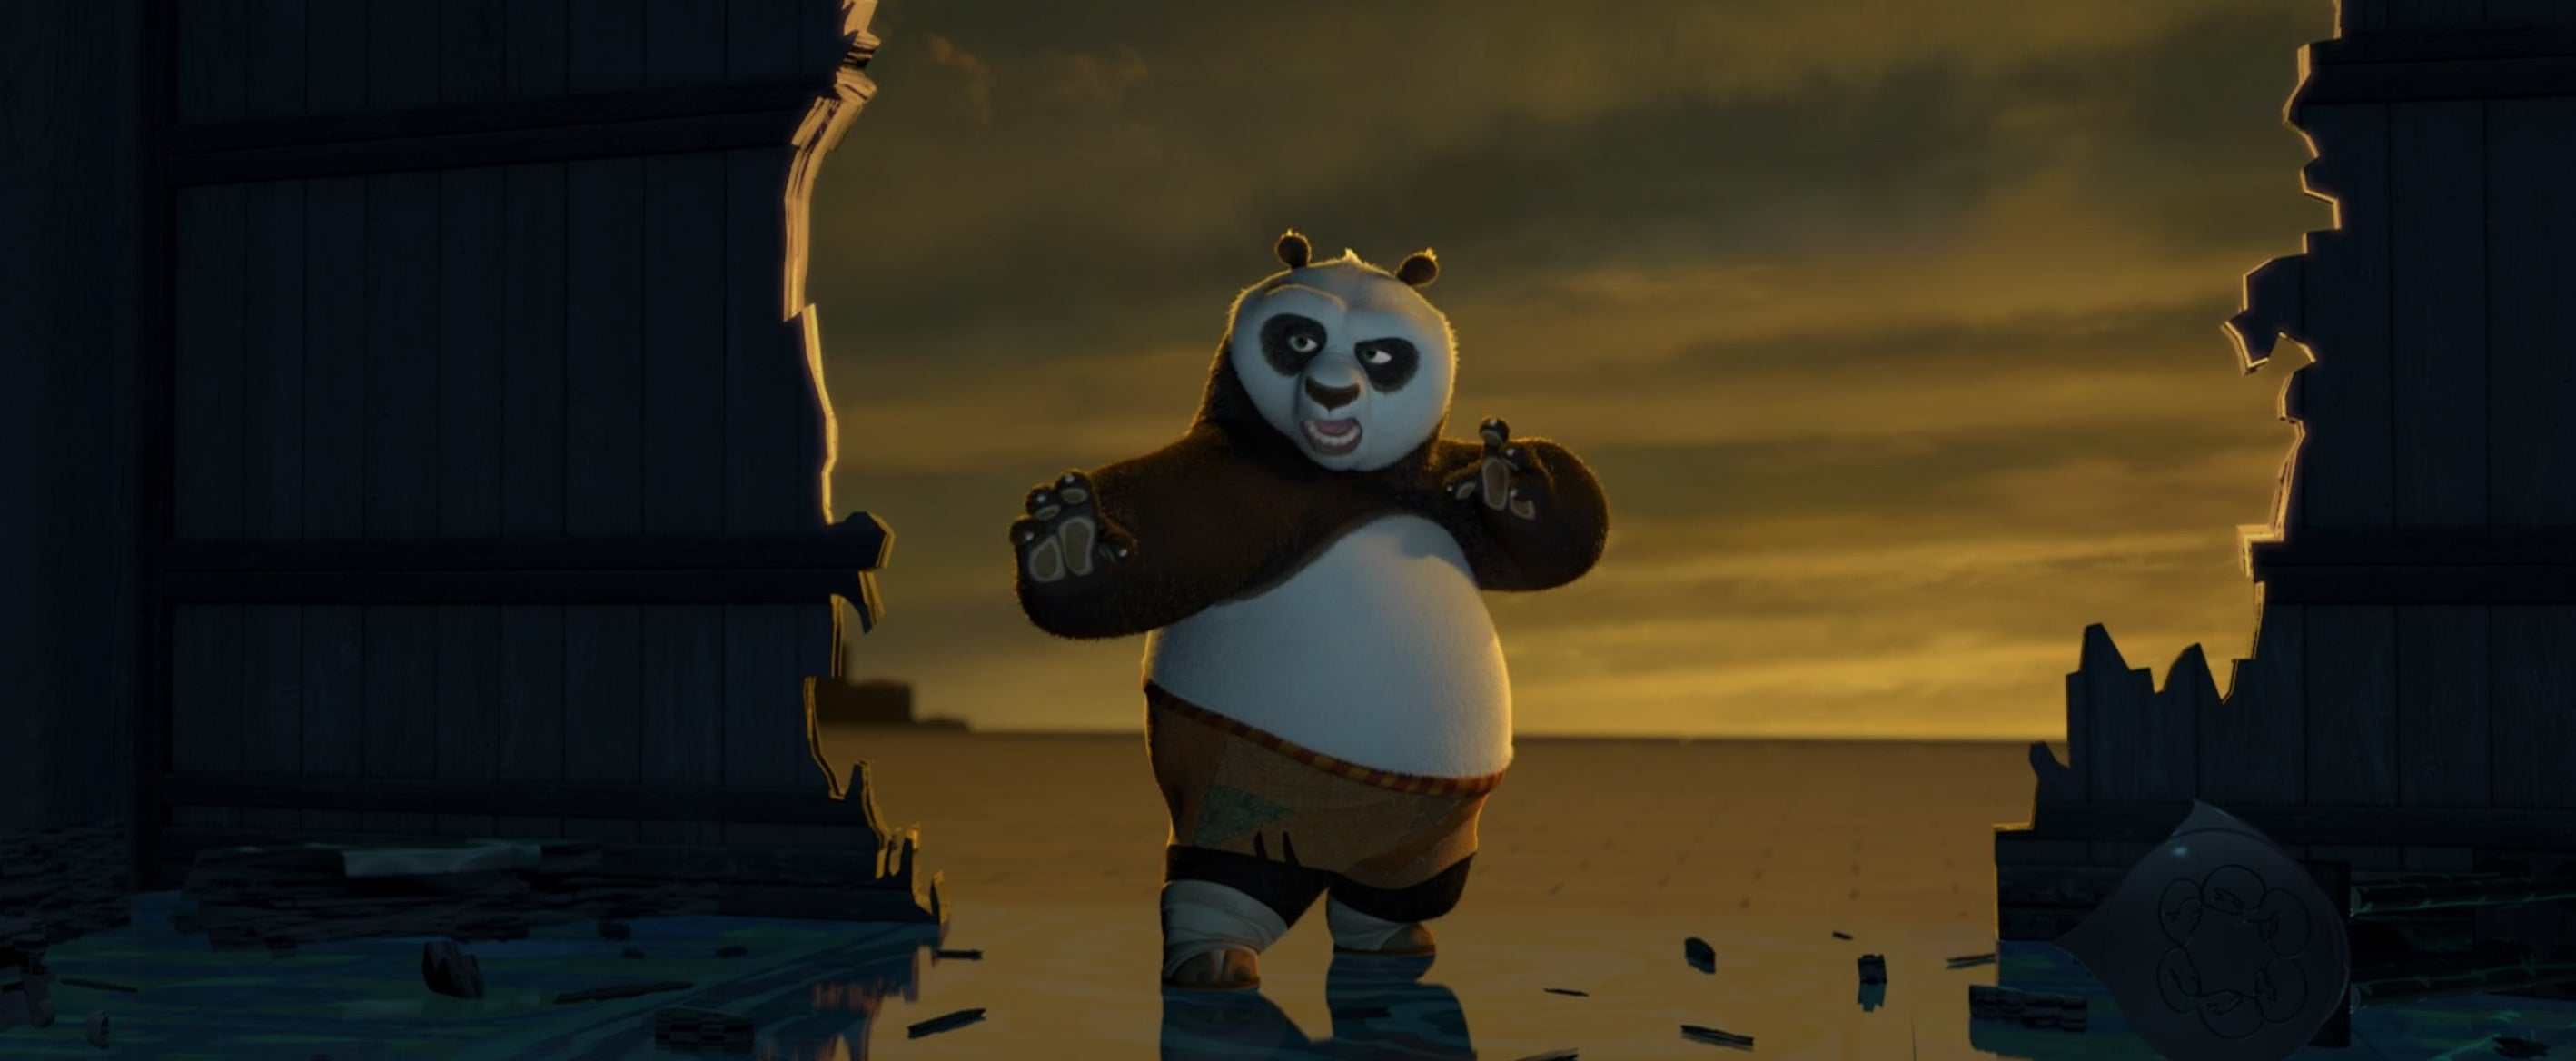 An animated panda in a kung fu posture